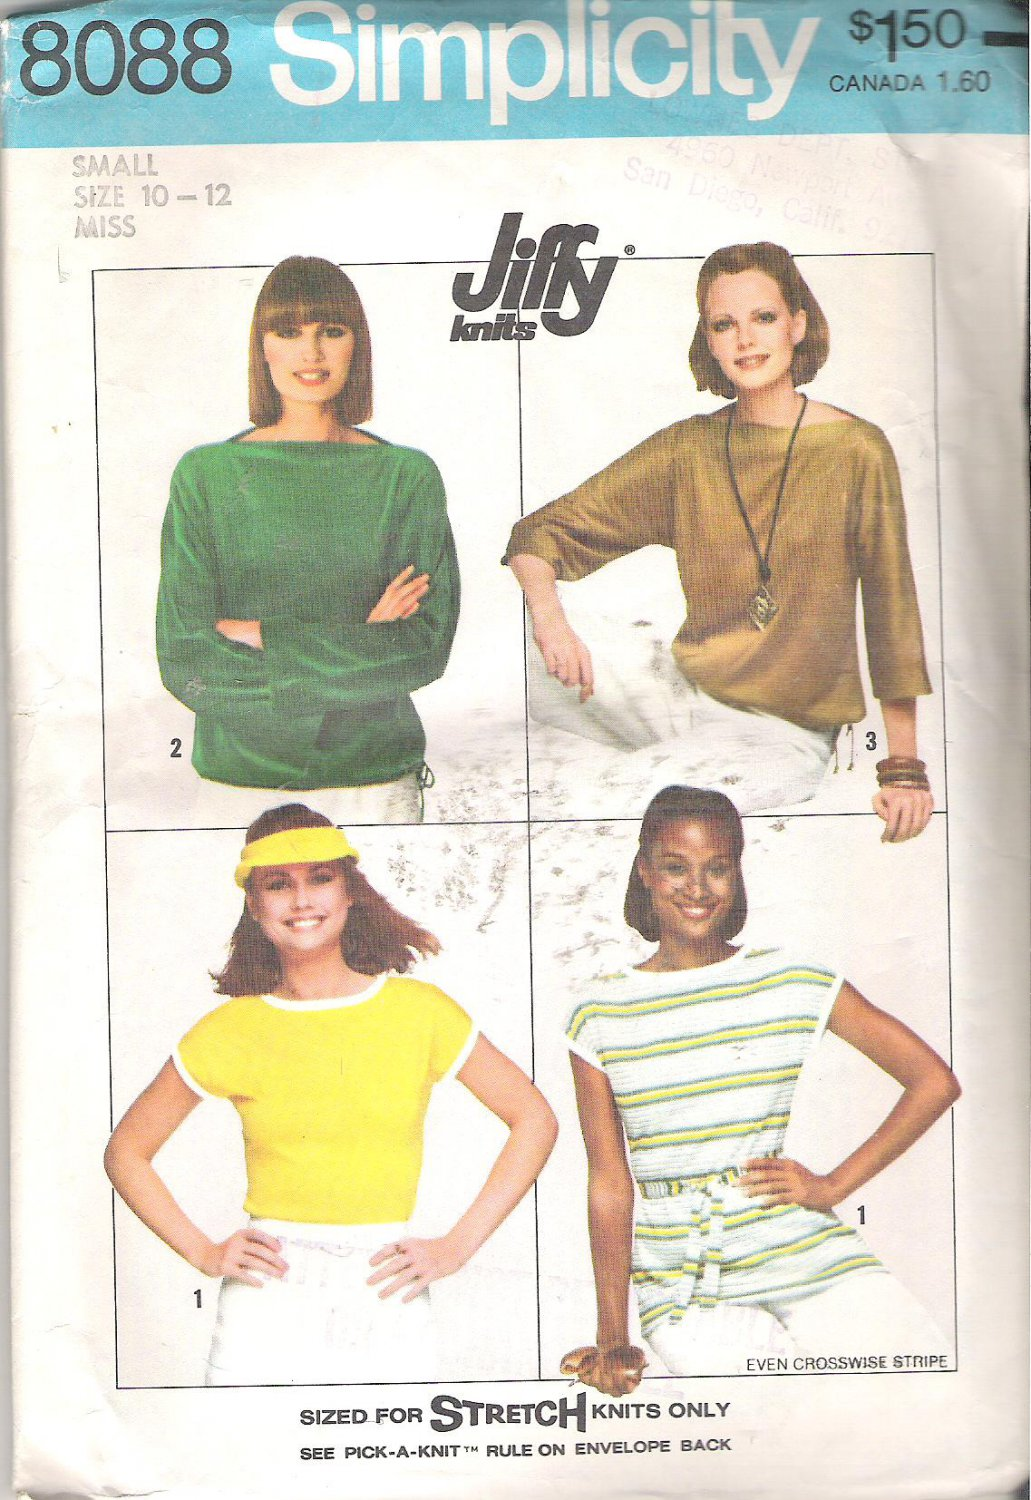 Simplicity 8088 (1977) Vintage Pattern Knit Pullover Bateau Neckline Tops Size 10-12 Part Cut to 12